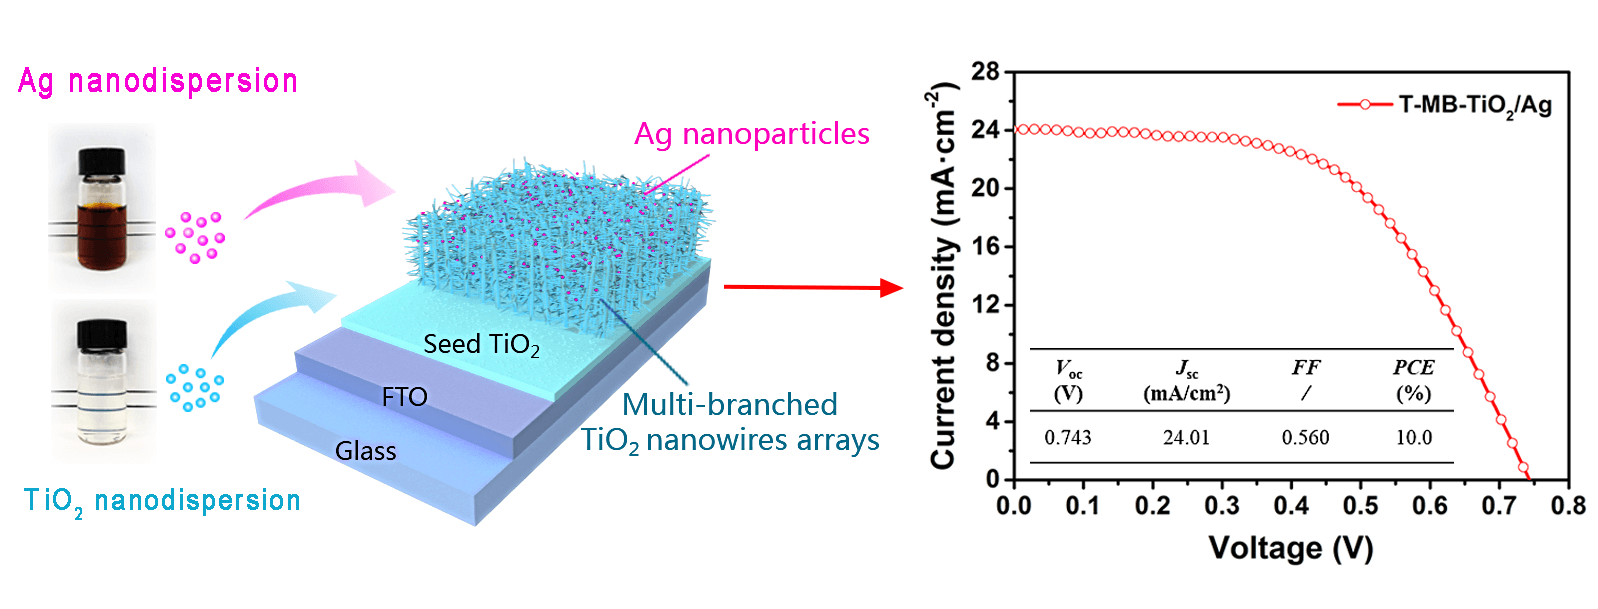 Preparation of Transparent Dispersions with Monodispersed Ag Nanoparticles for TiO2 Photoelectrode Materials with Excellent Photovoltaic Performance